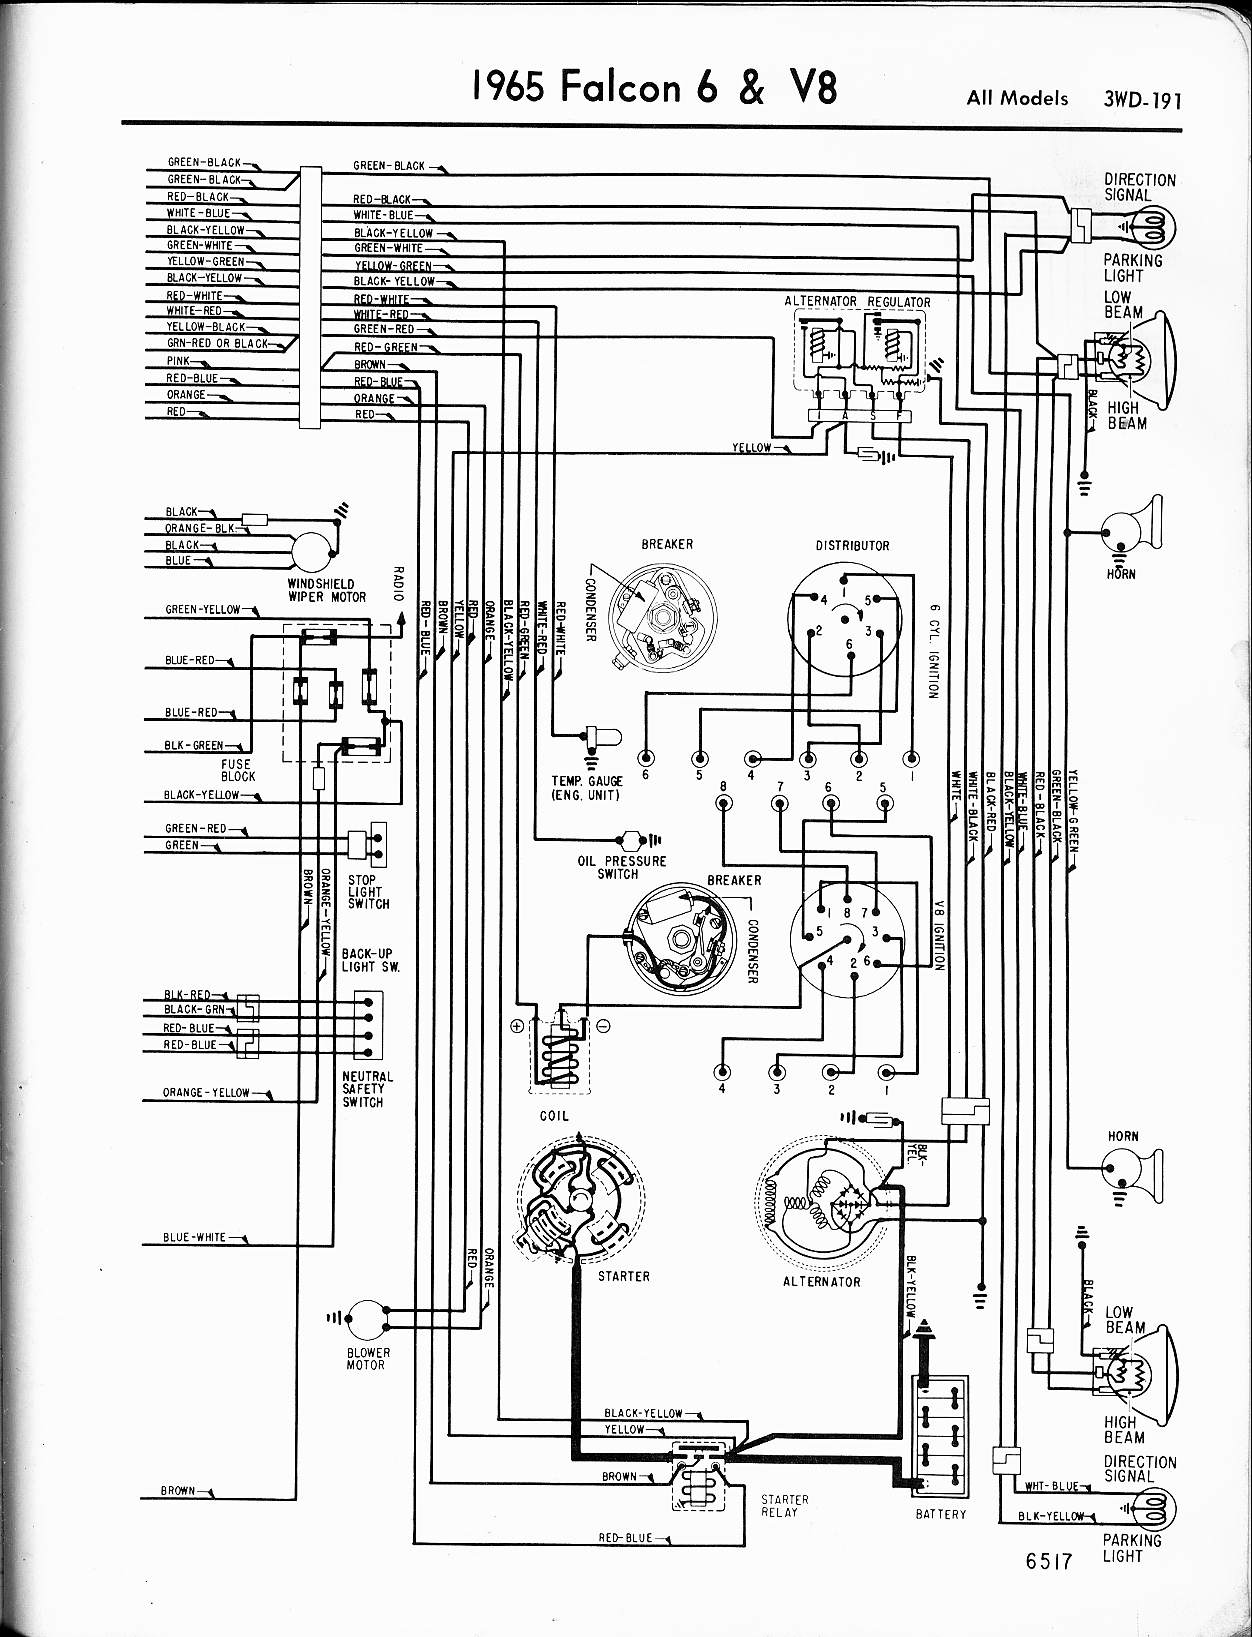 1972 ranchero wiring diagram wiring diagrams best 1968 falcon wiring diagram wiring diagrams best 1981 ranchero 1968 ford falcon wiring diagram wiring library